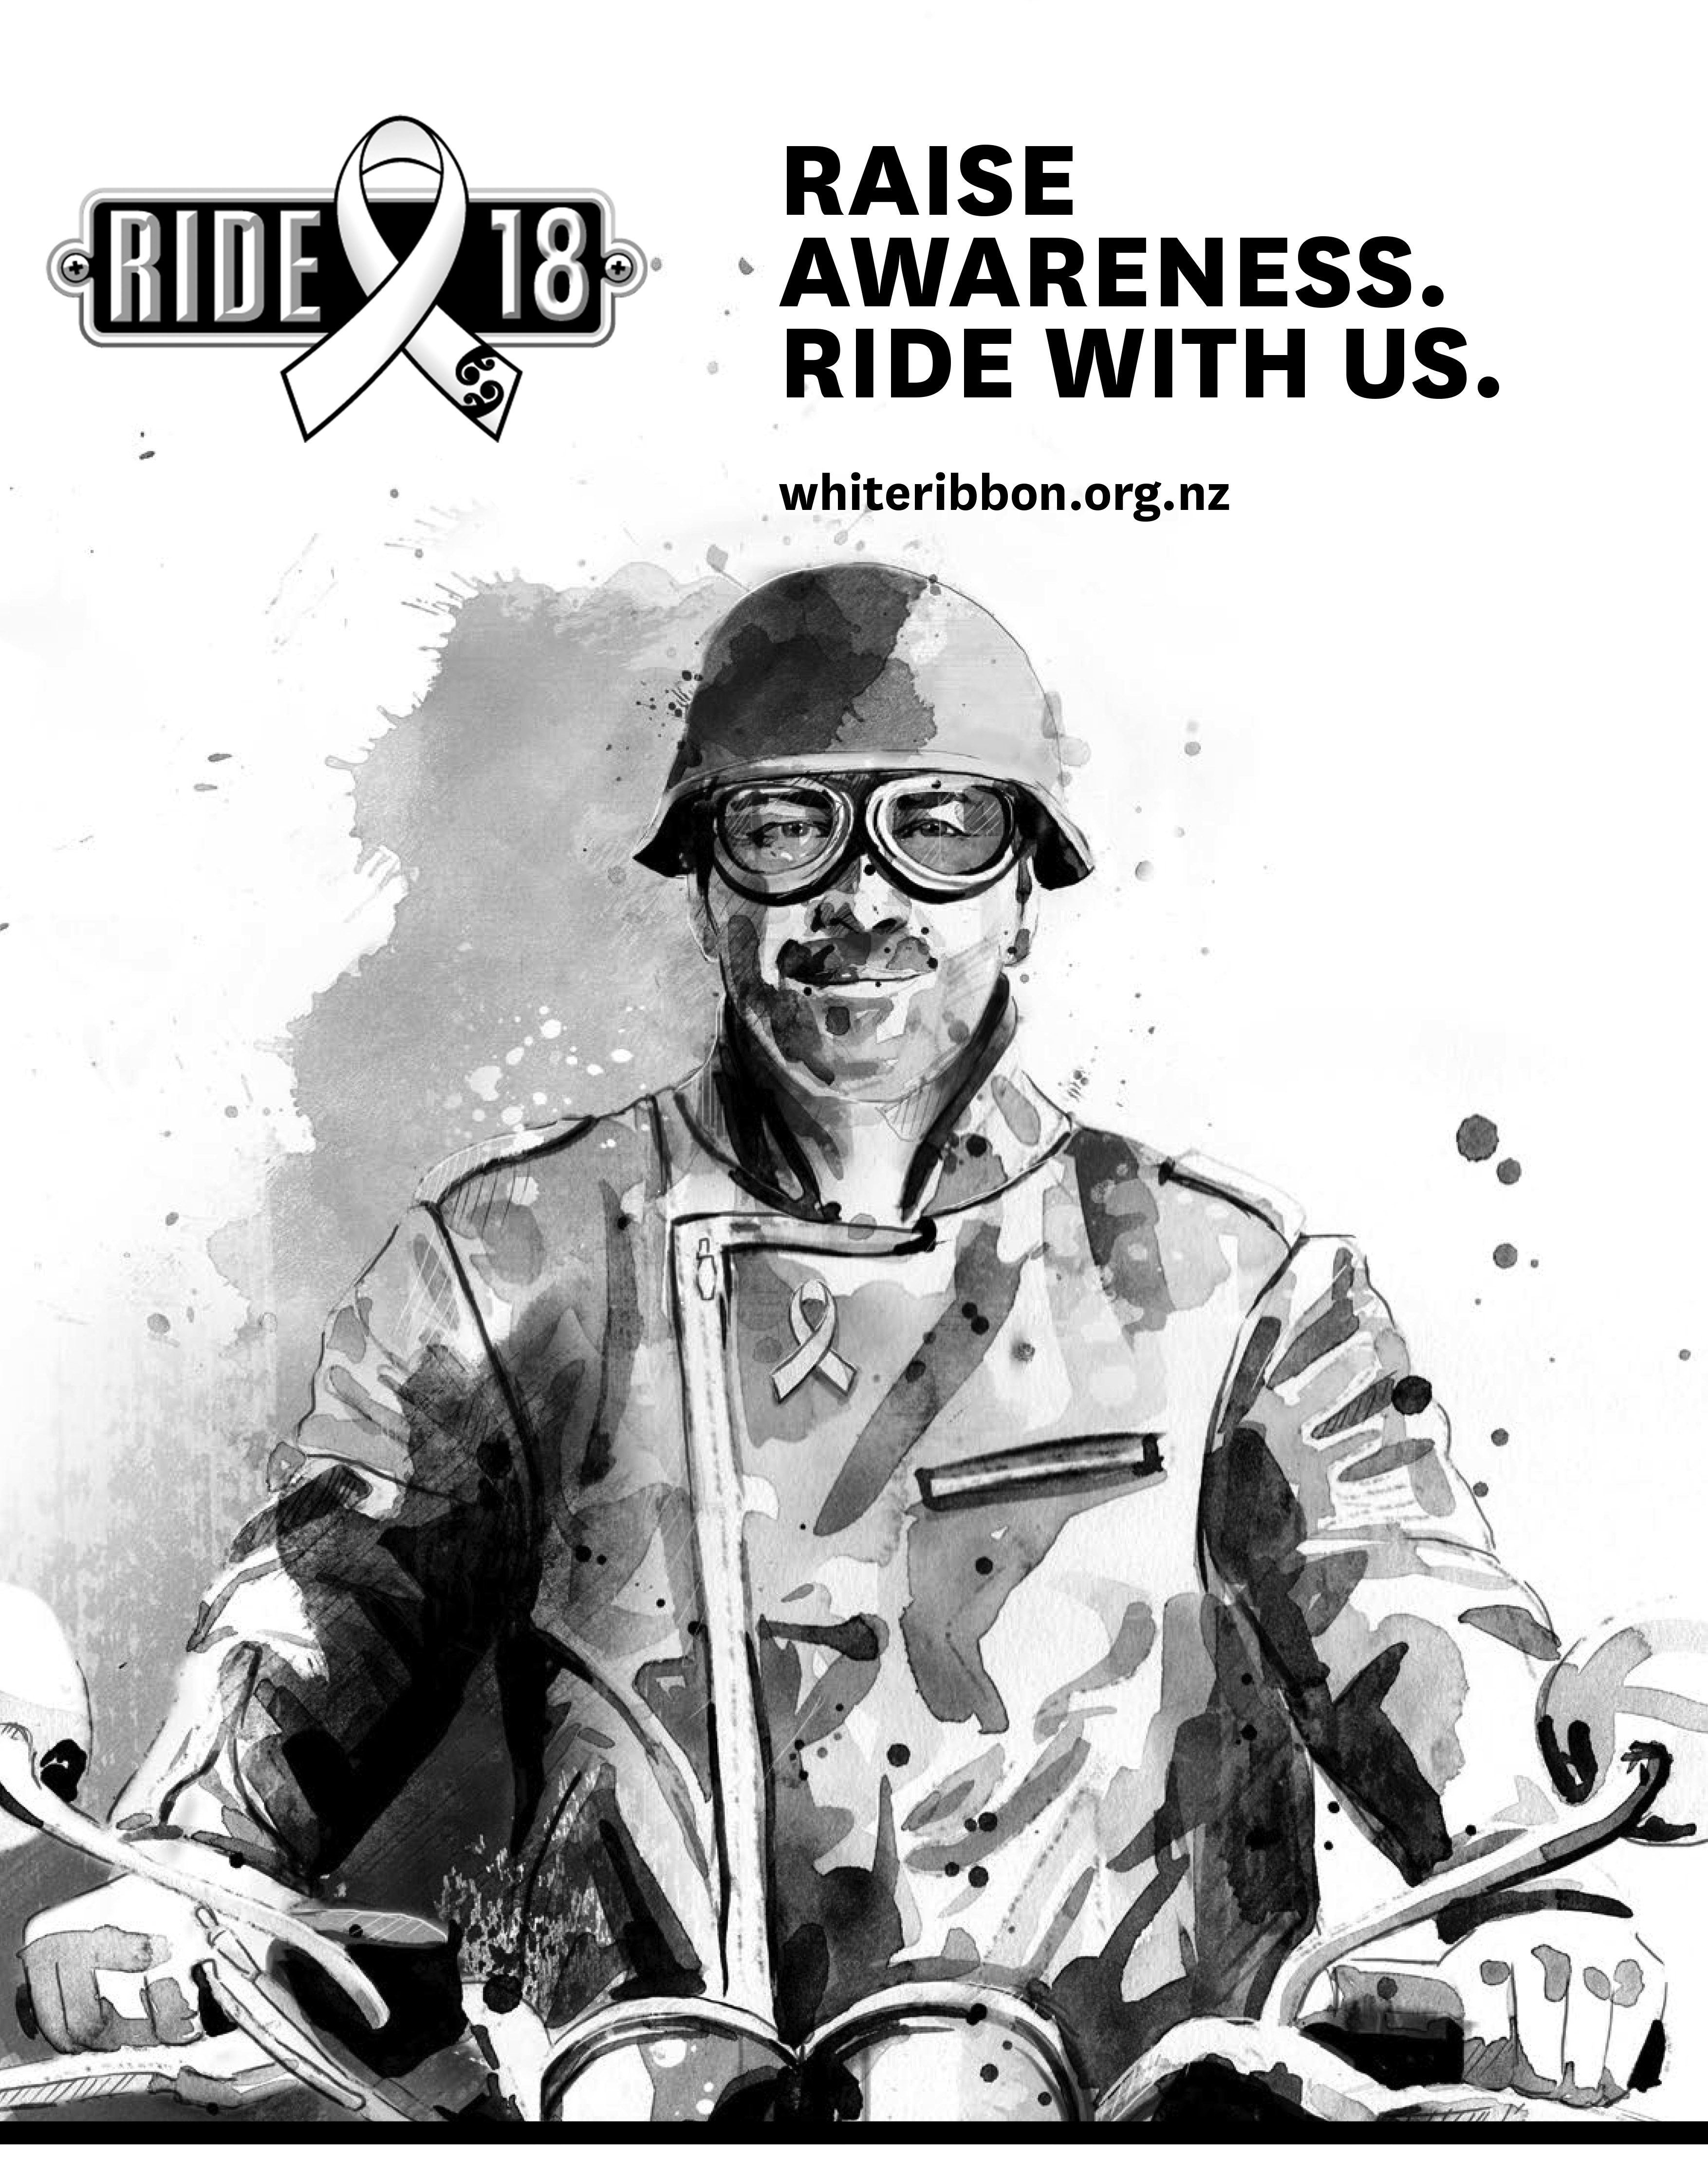 WHITE RIBBON RIDE RIDERS EVENTS PHOTOS The 2018 White Ribbon Ride Download the 2018 Ride Posterjpg Download the 2018 Ride Posterpdf The White Ribbon Ride is